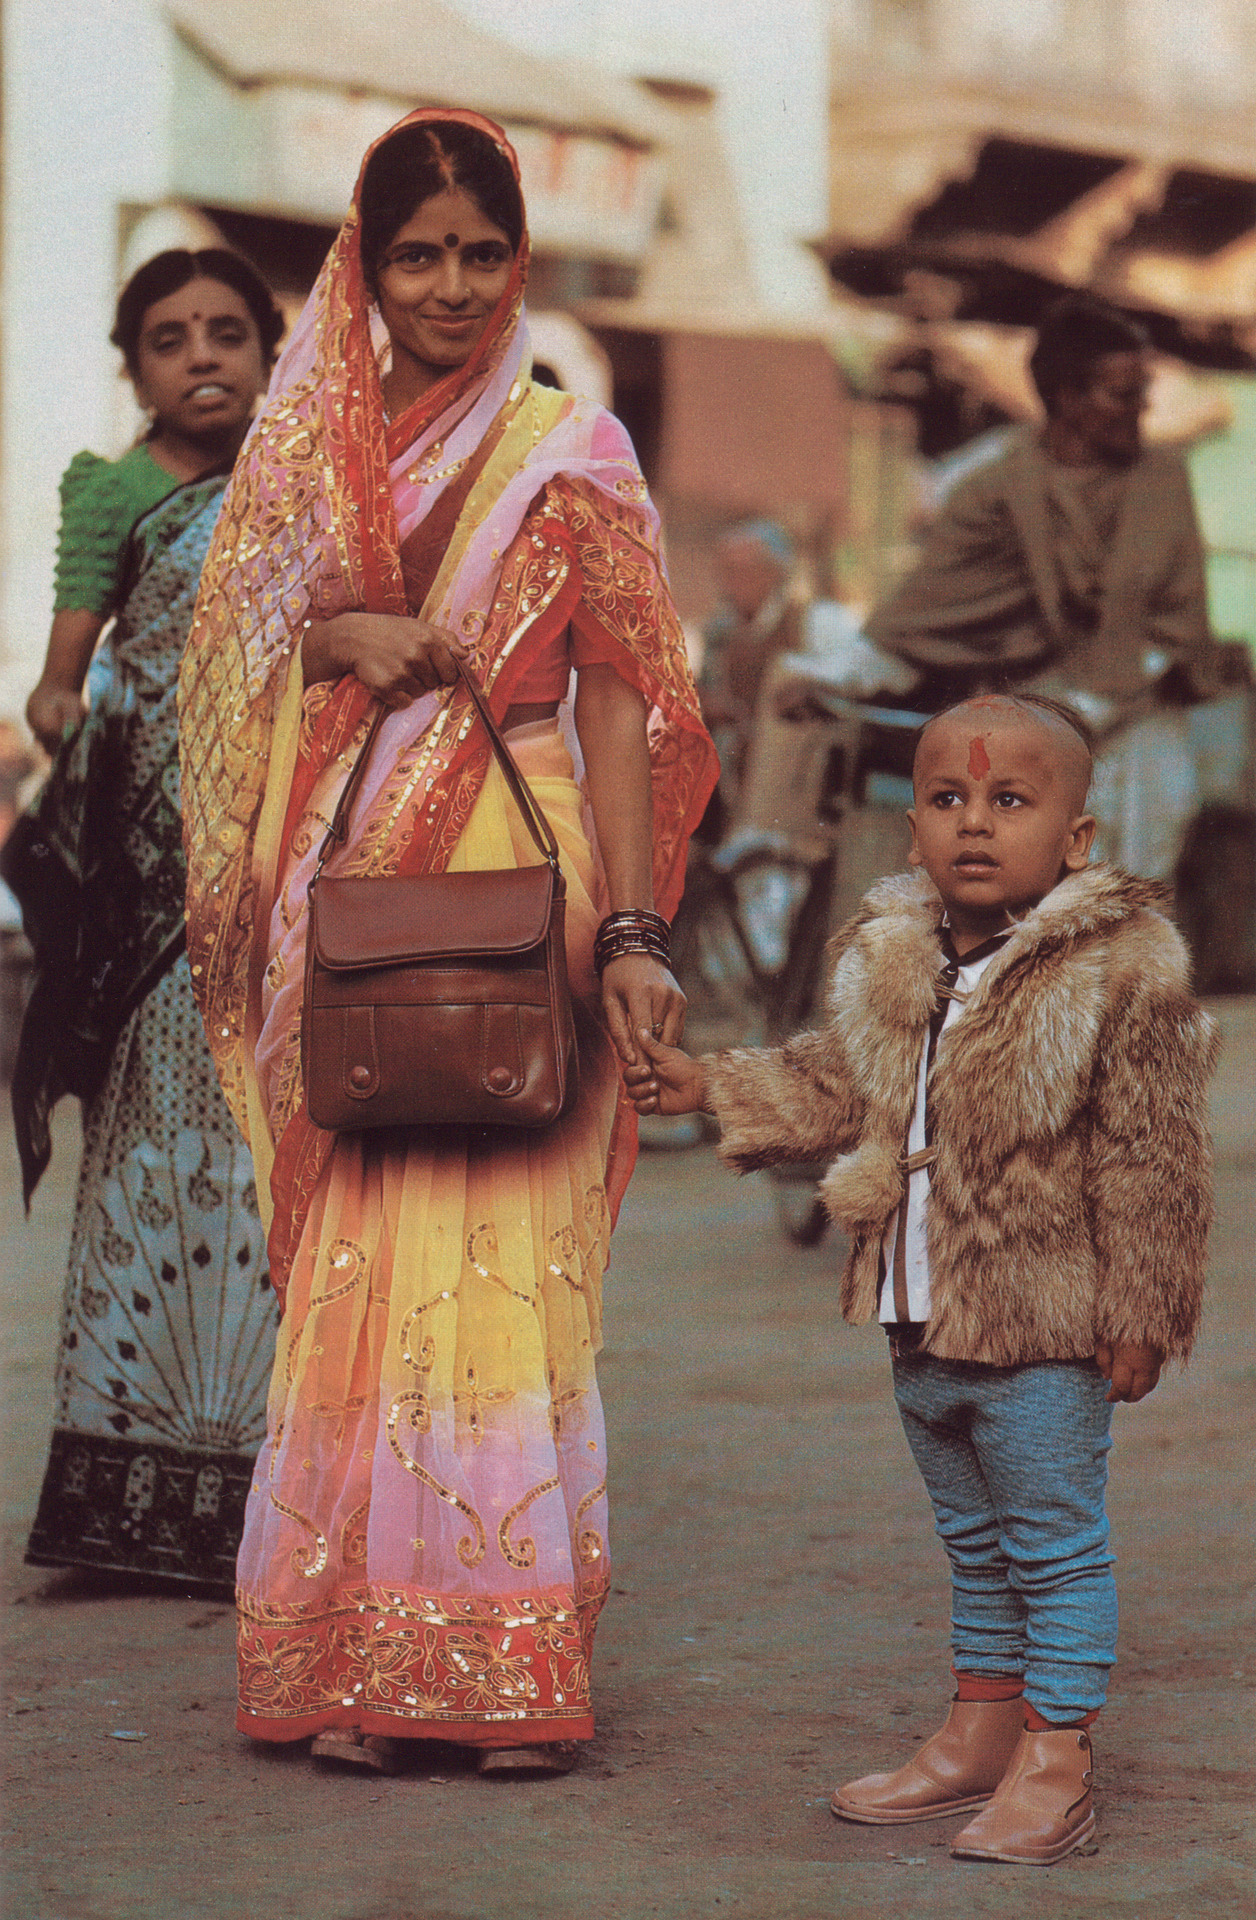 'Banaras India's City of Light' National Geographic February 1986 Tony Heiderer